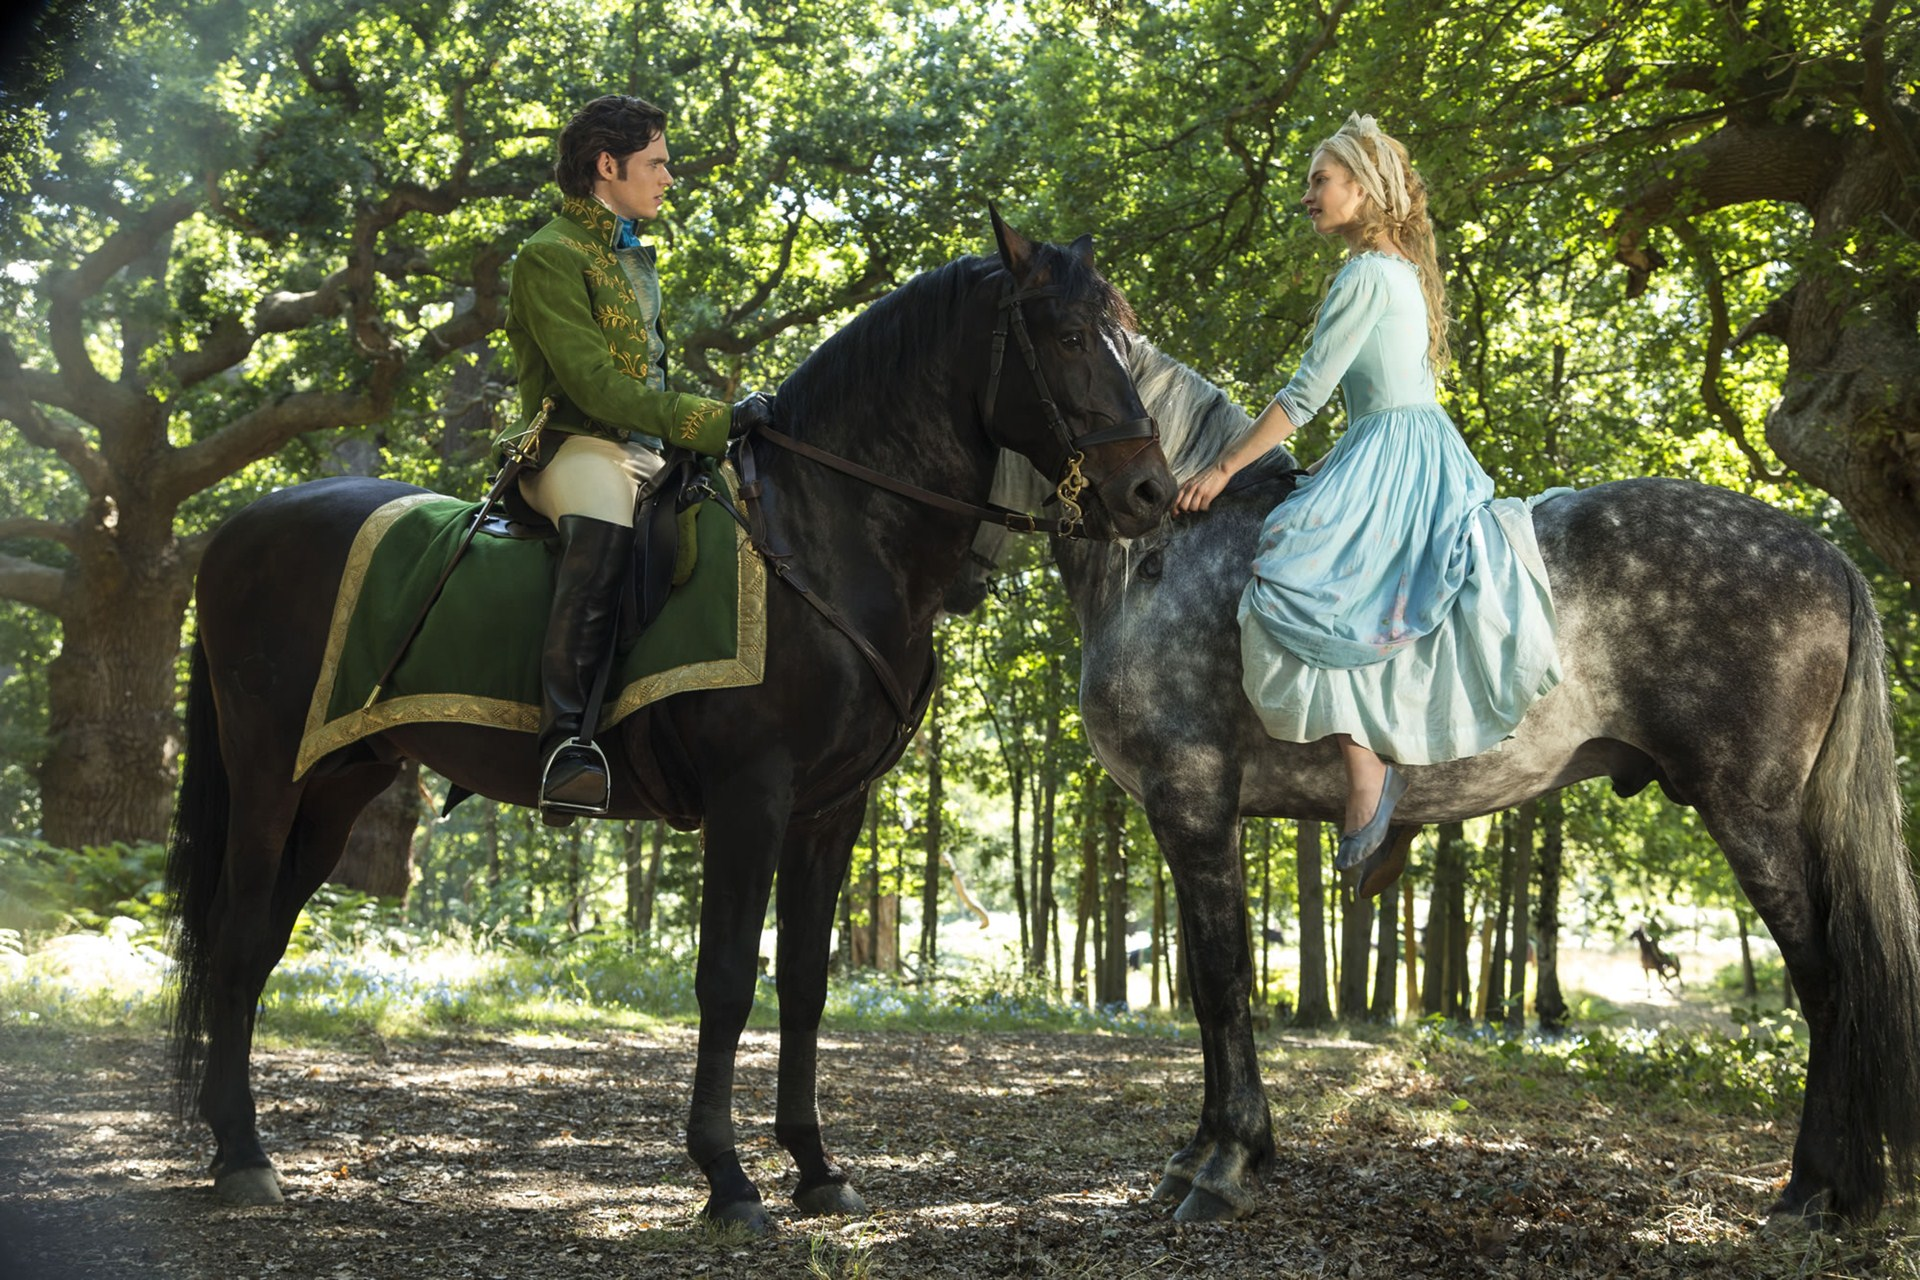 Cool Wallpaper Horse Scenery - cinderella-2015-richard-madden-and-lily-james-wallpapers  Picture_573121.jpg